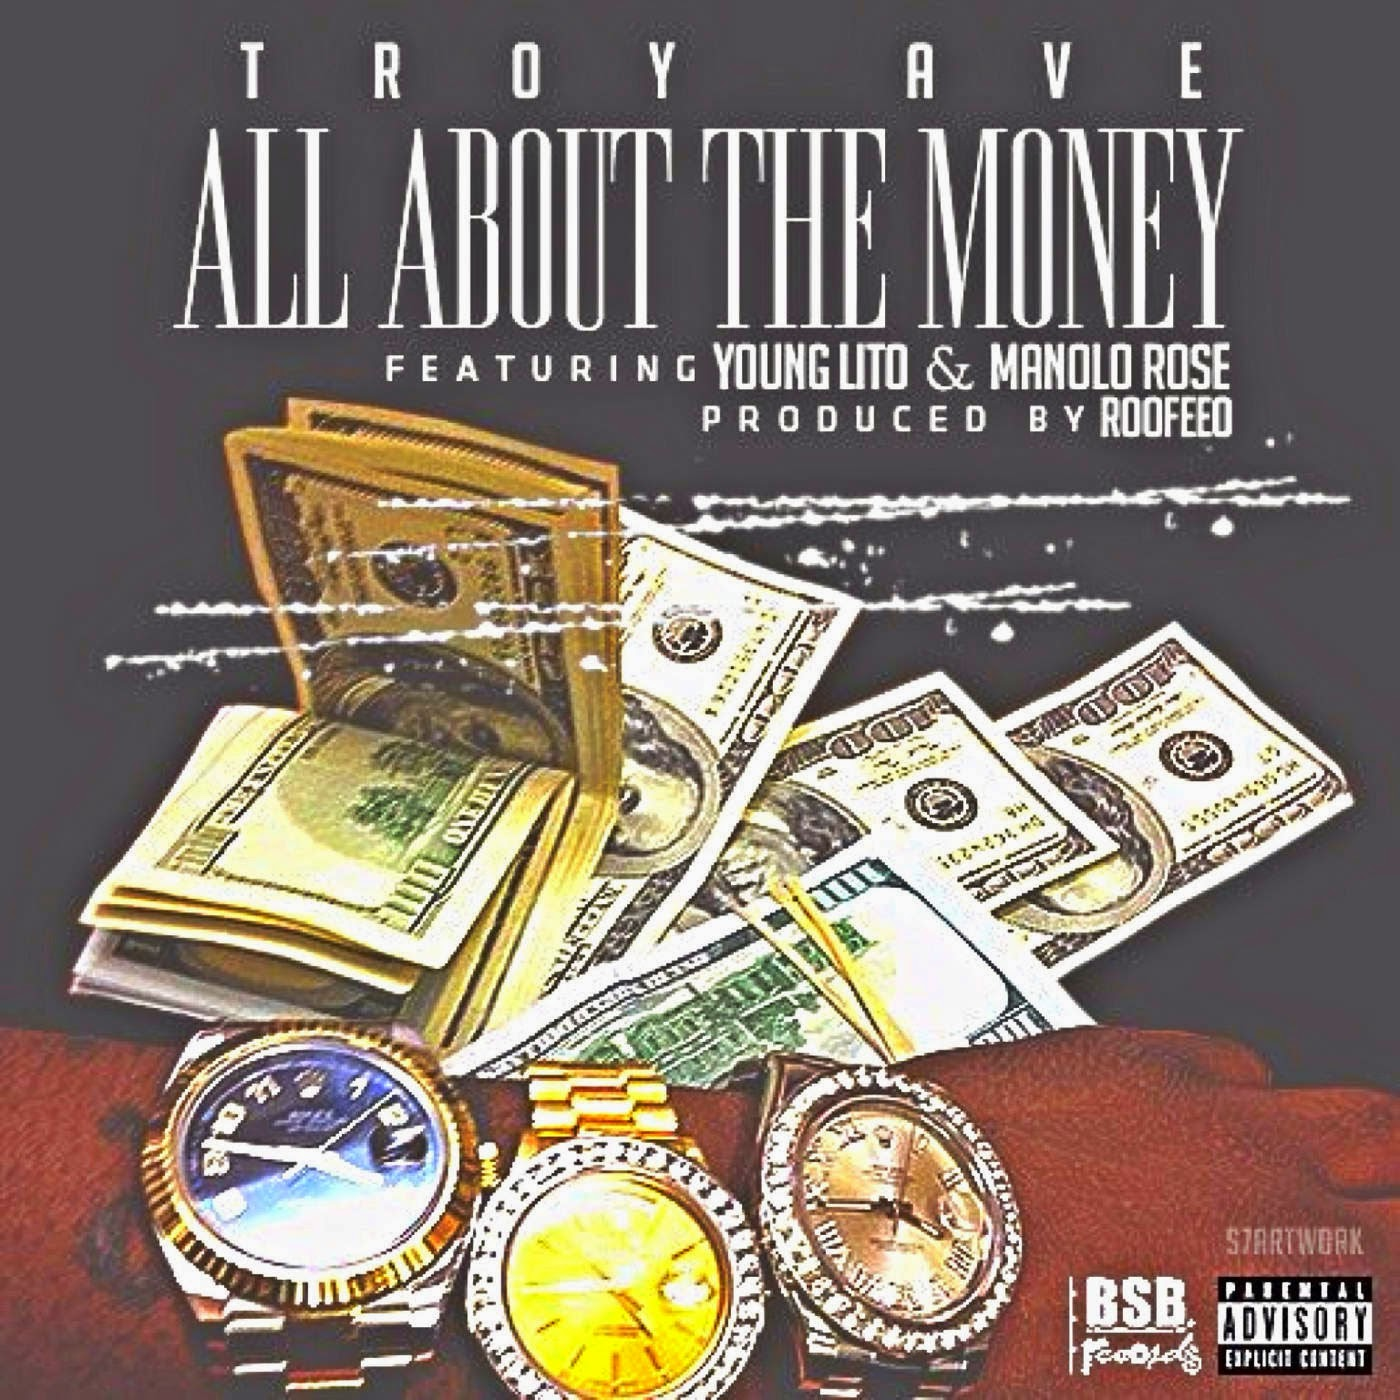 Troy Ave - All About the Money (feat. Young Lito & Manolo Rose) - Single Cover